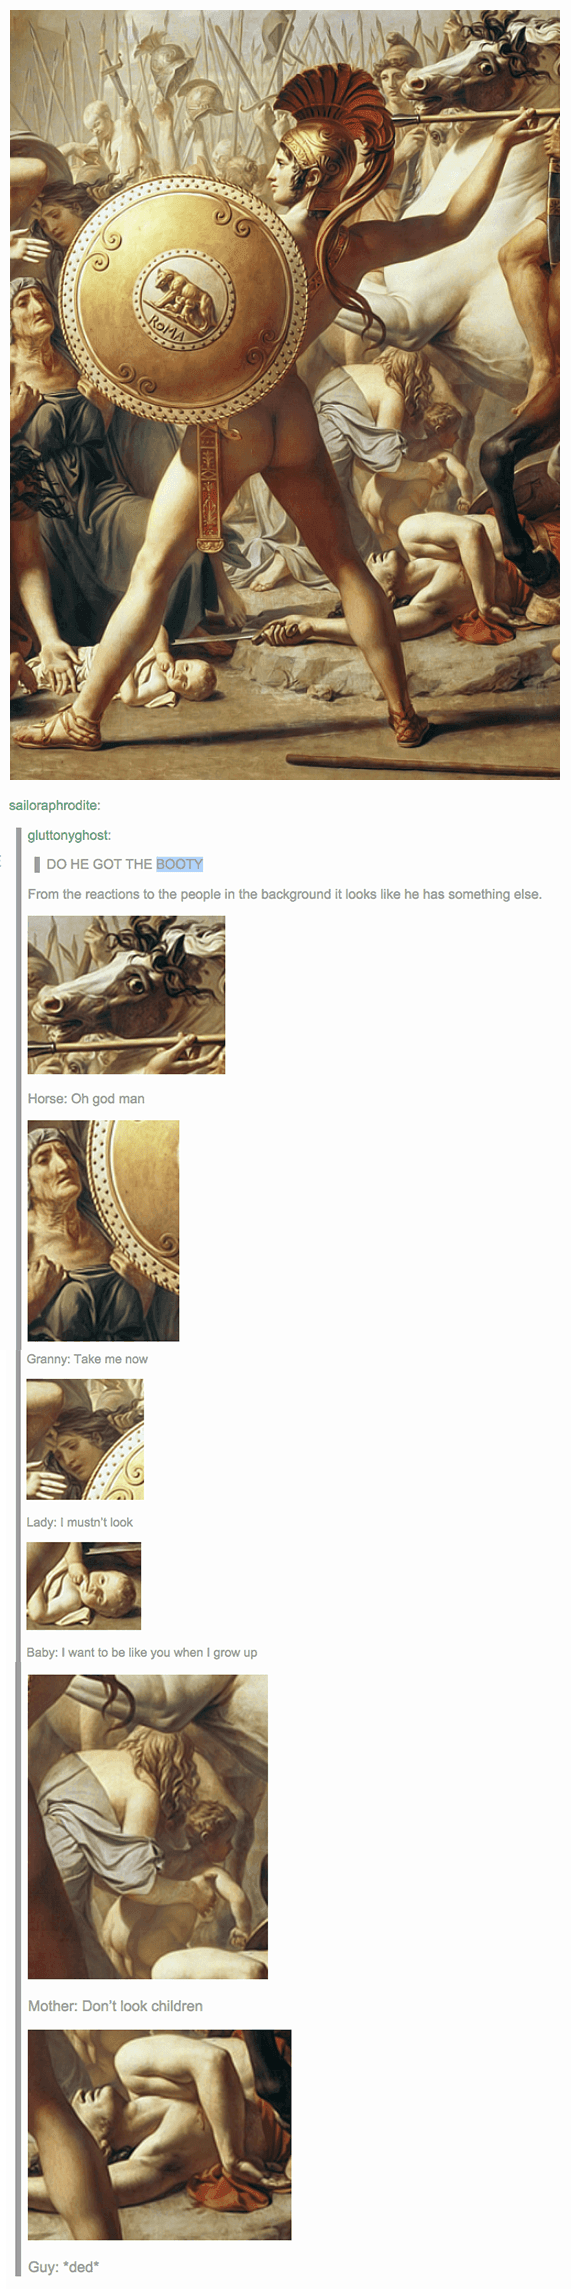 Tumblr Art History Butt Funny Pinterest Art Memes Hilarious - 27 historical works of art that are now unbelievably funny